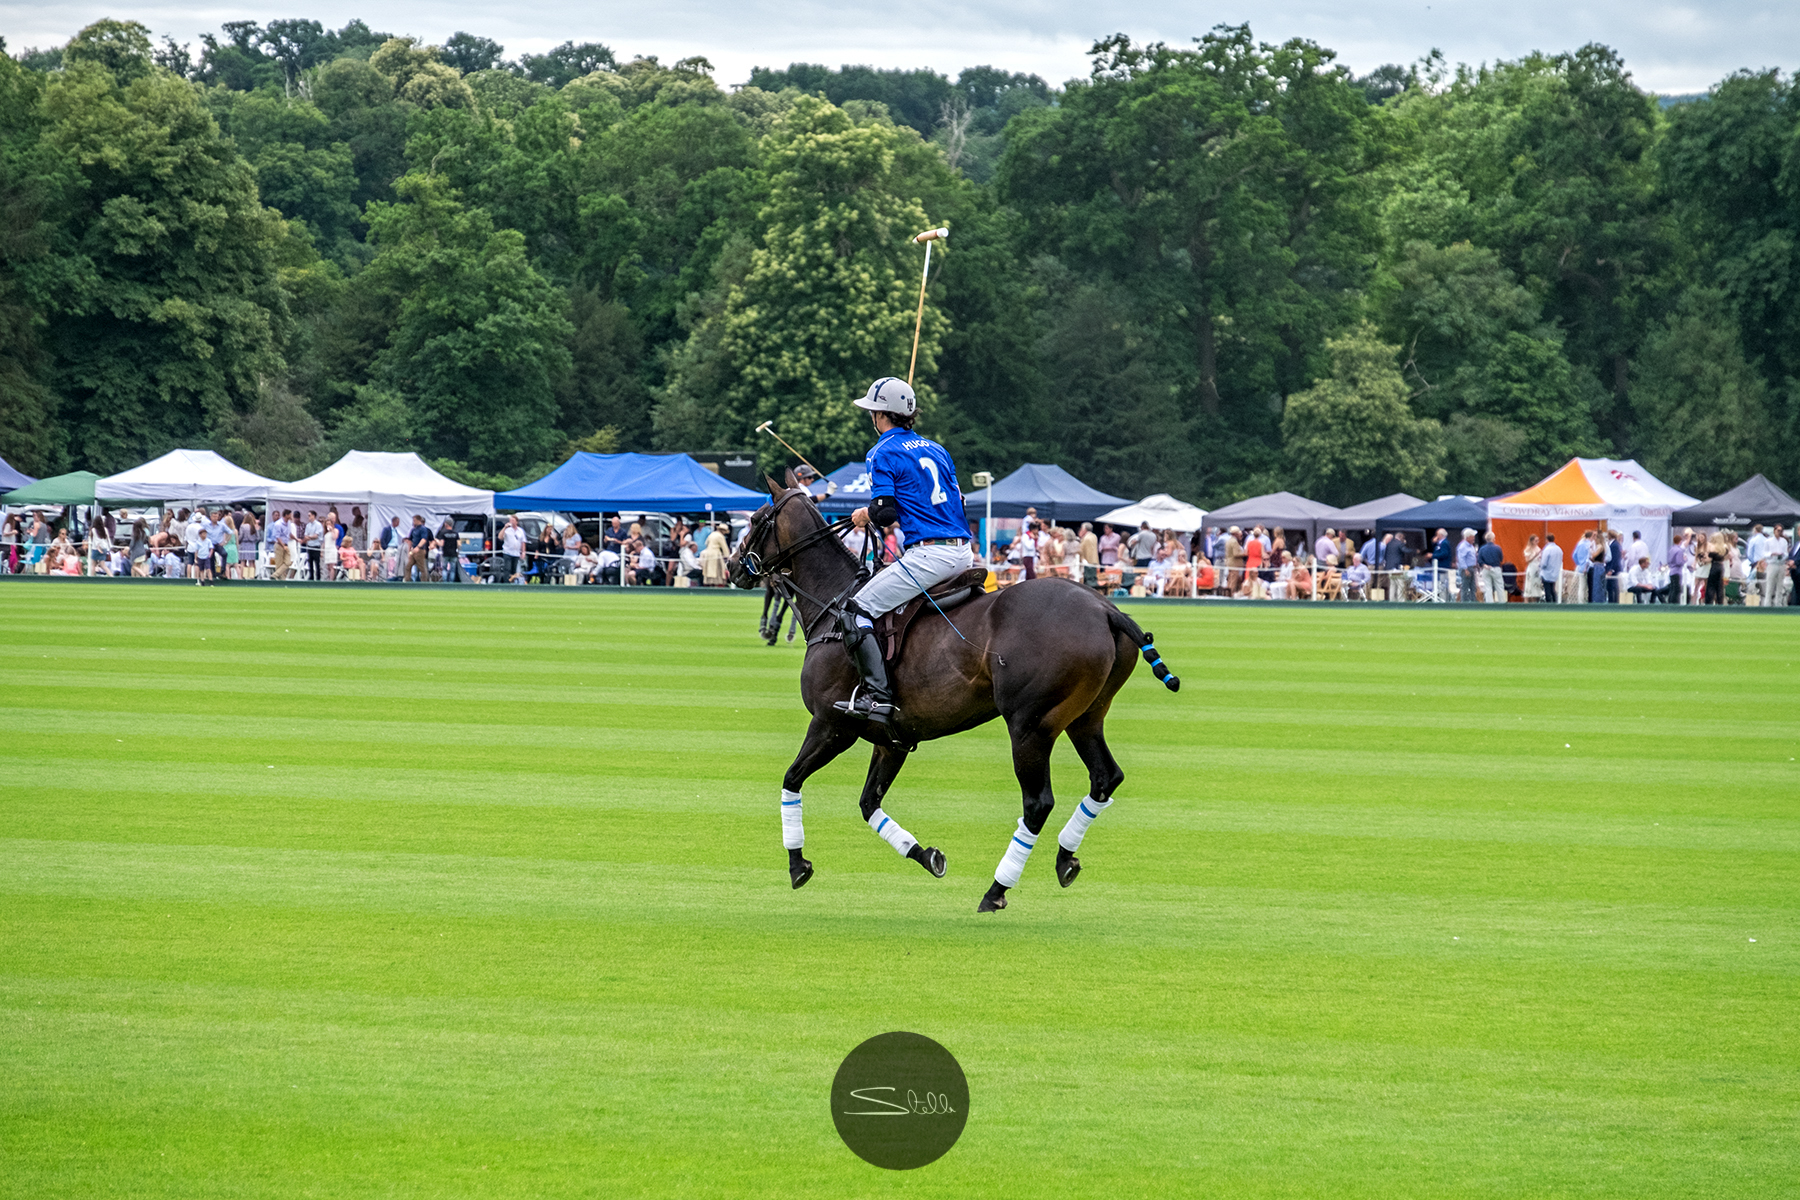 Stella Scordellis Jaeger-LeCoultre Gold Cup 2016 13 Watermarked.jpg